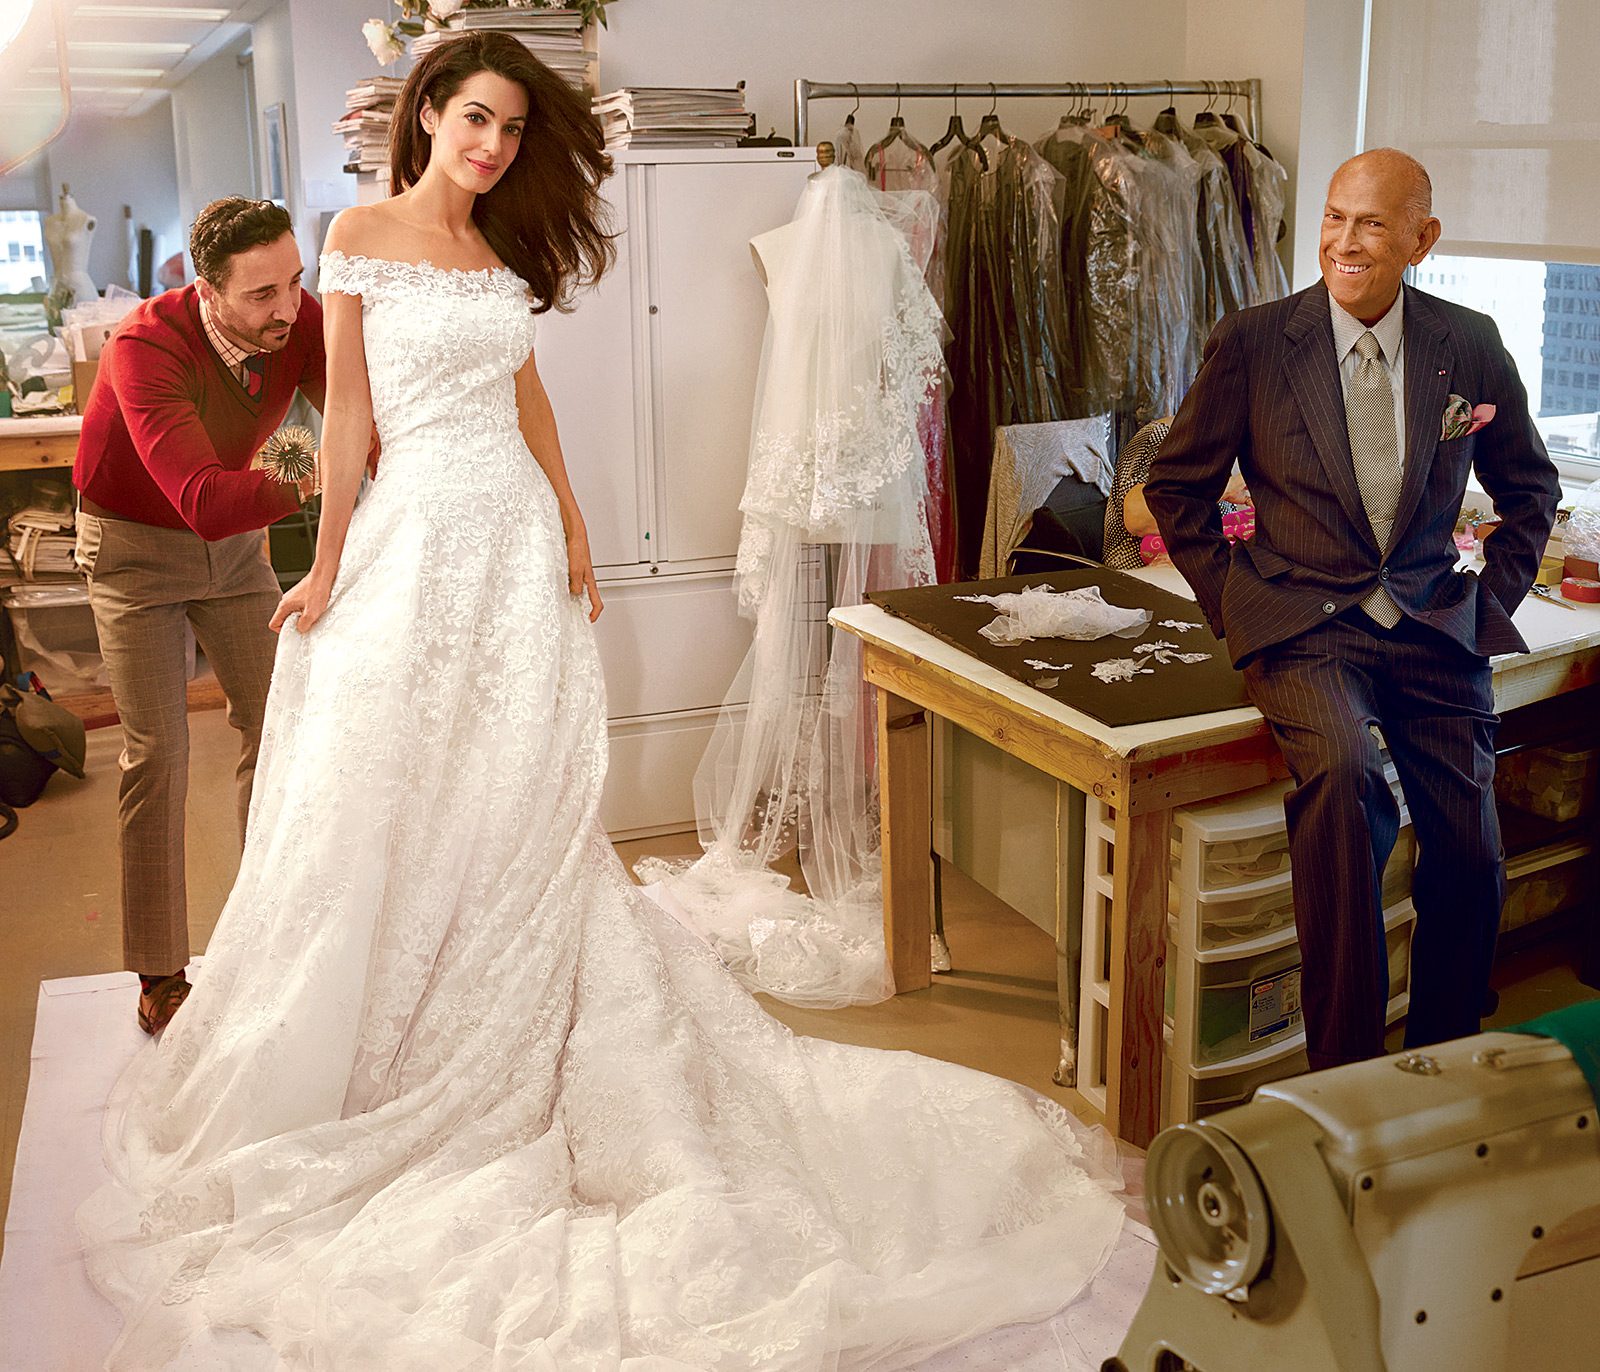 Amal Alamuddin and George Clooney wedding! Many layers of Alexa lace for an outstanding bridal gown.